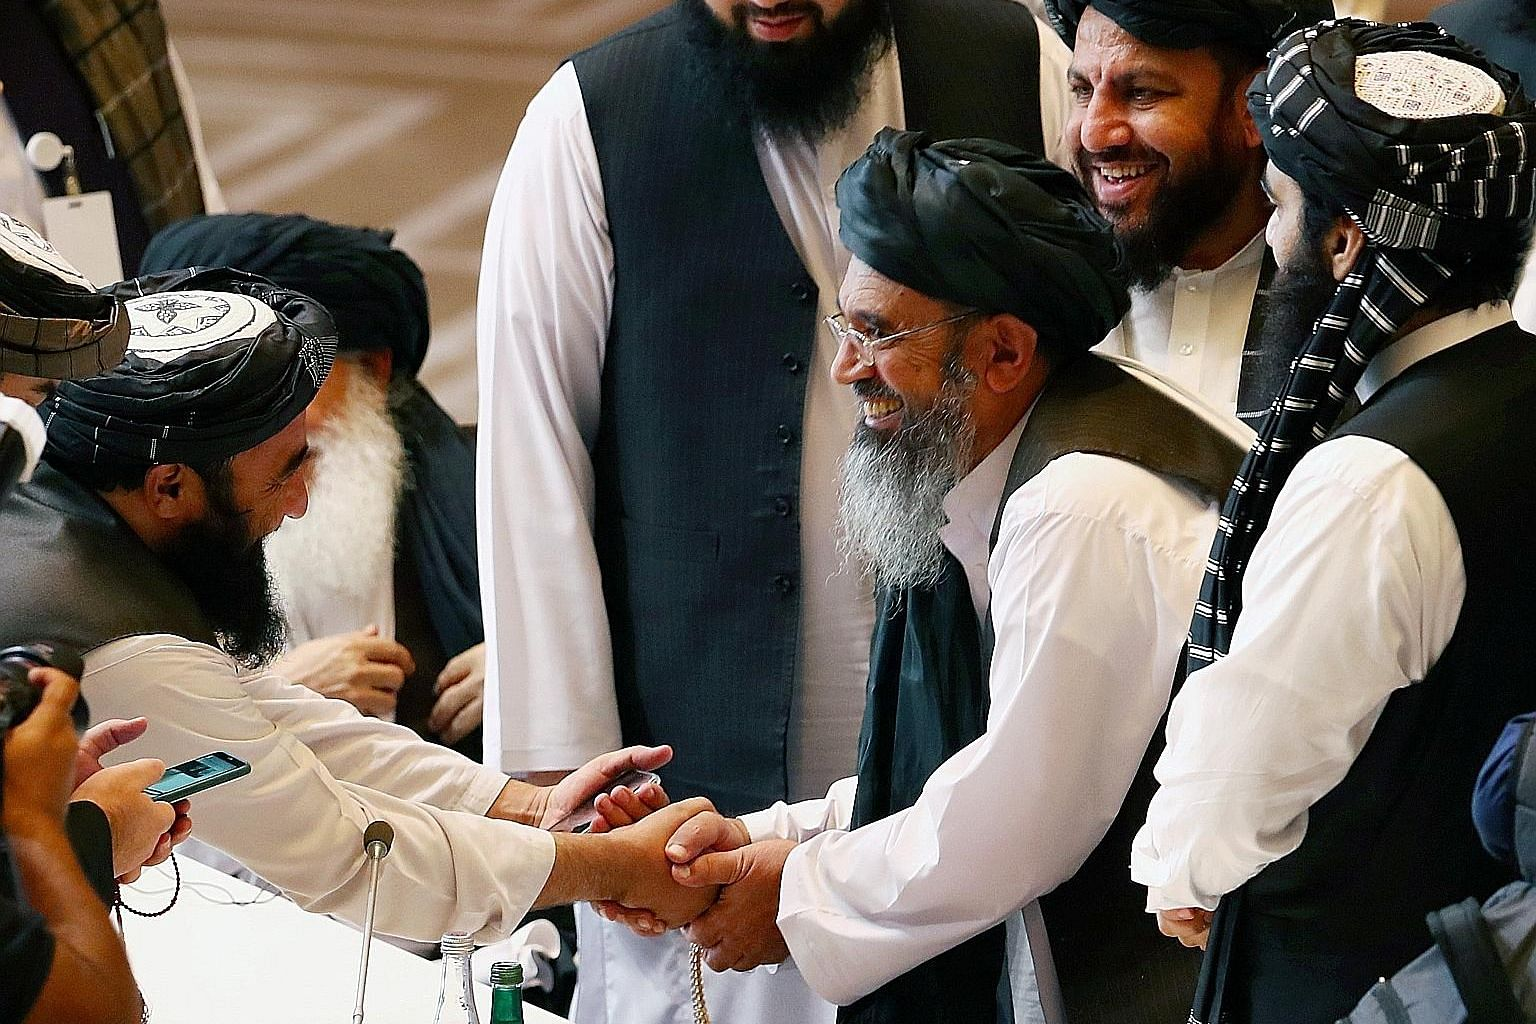 Taleban delegates at a ceremony yesterday in Doha, Qatar, to launch talks with an Afghan government team, aimed at ending two decades of war.